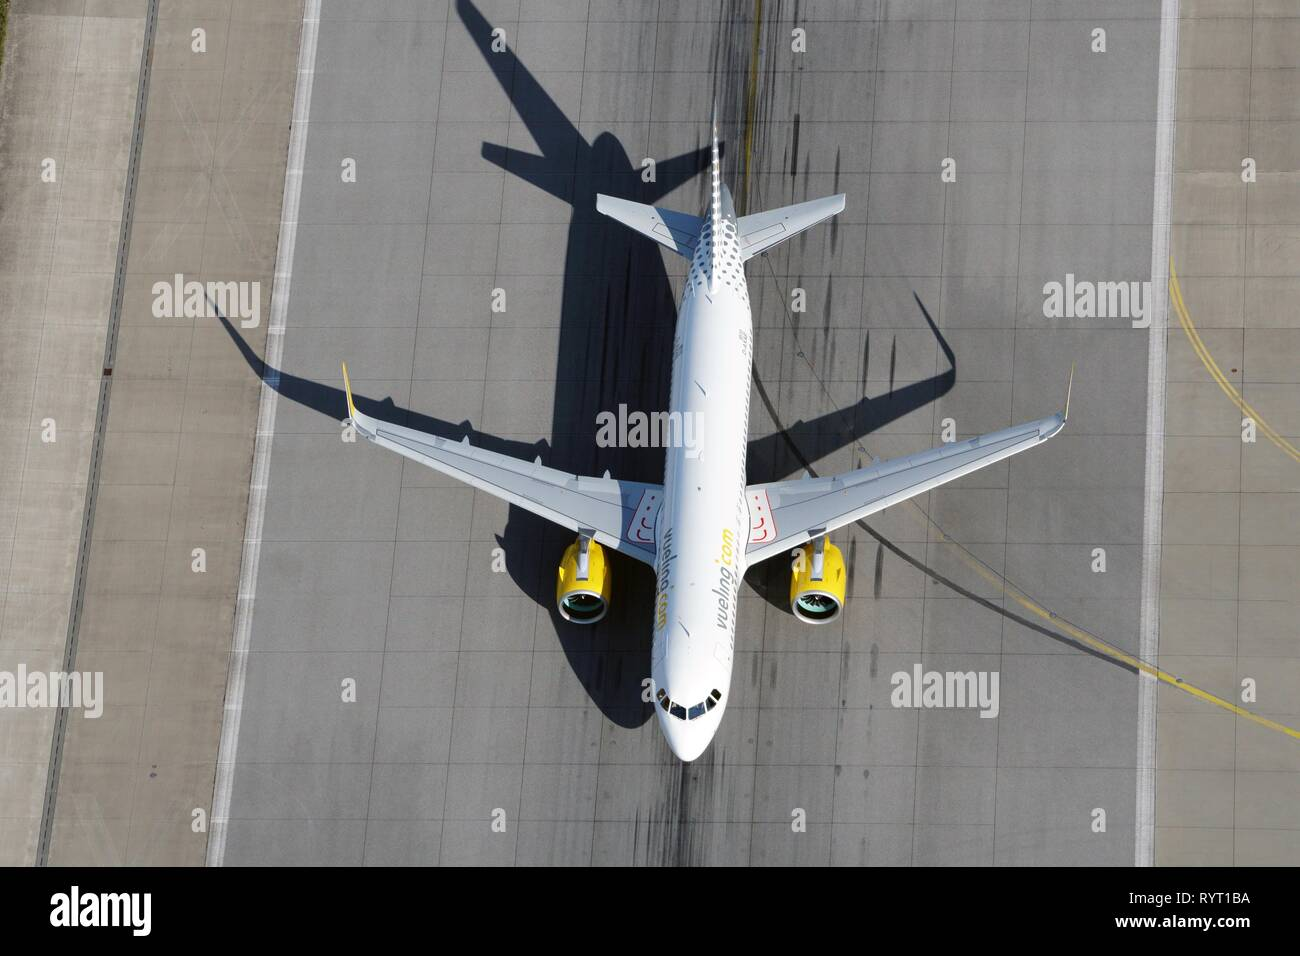 Airbus A319, Vueling, on the runway, Hamburg, Germany - Stock Image